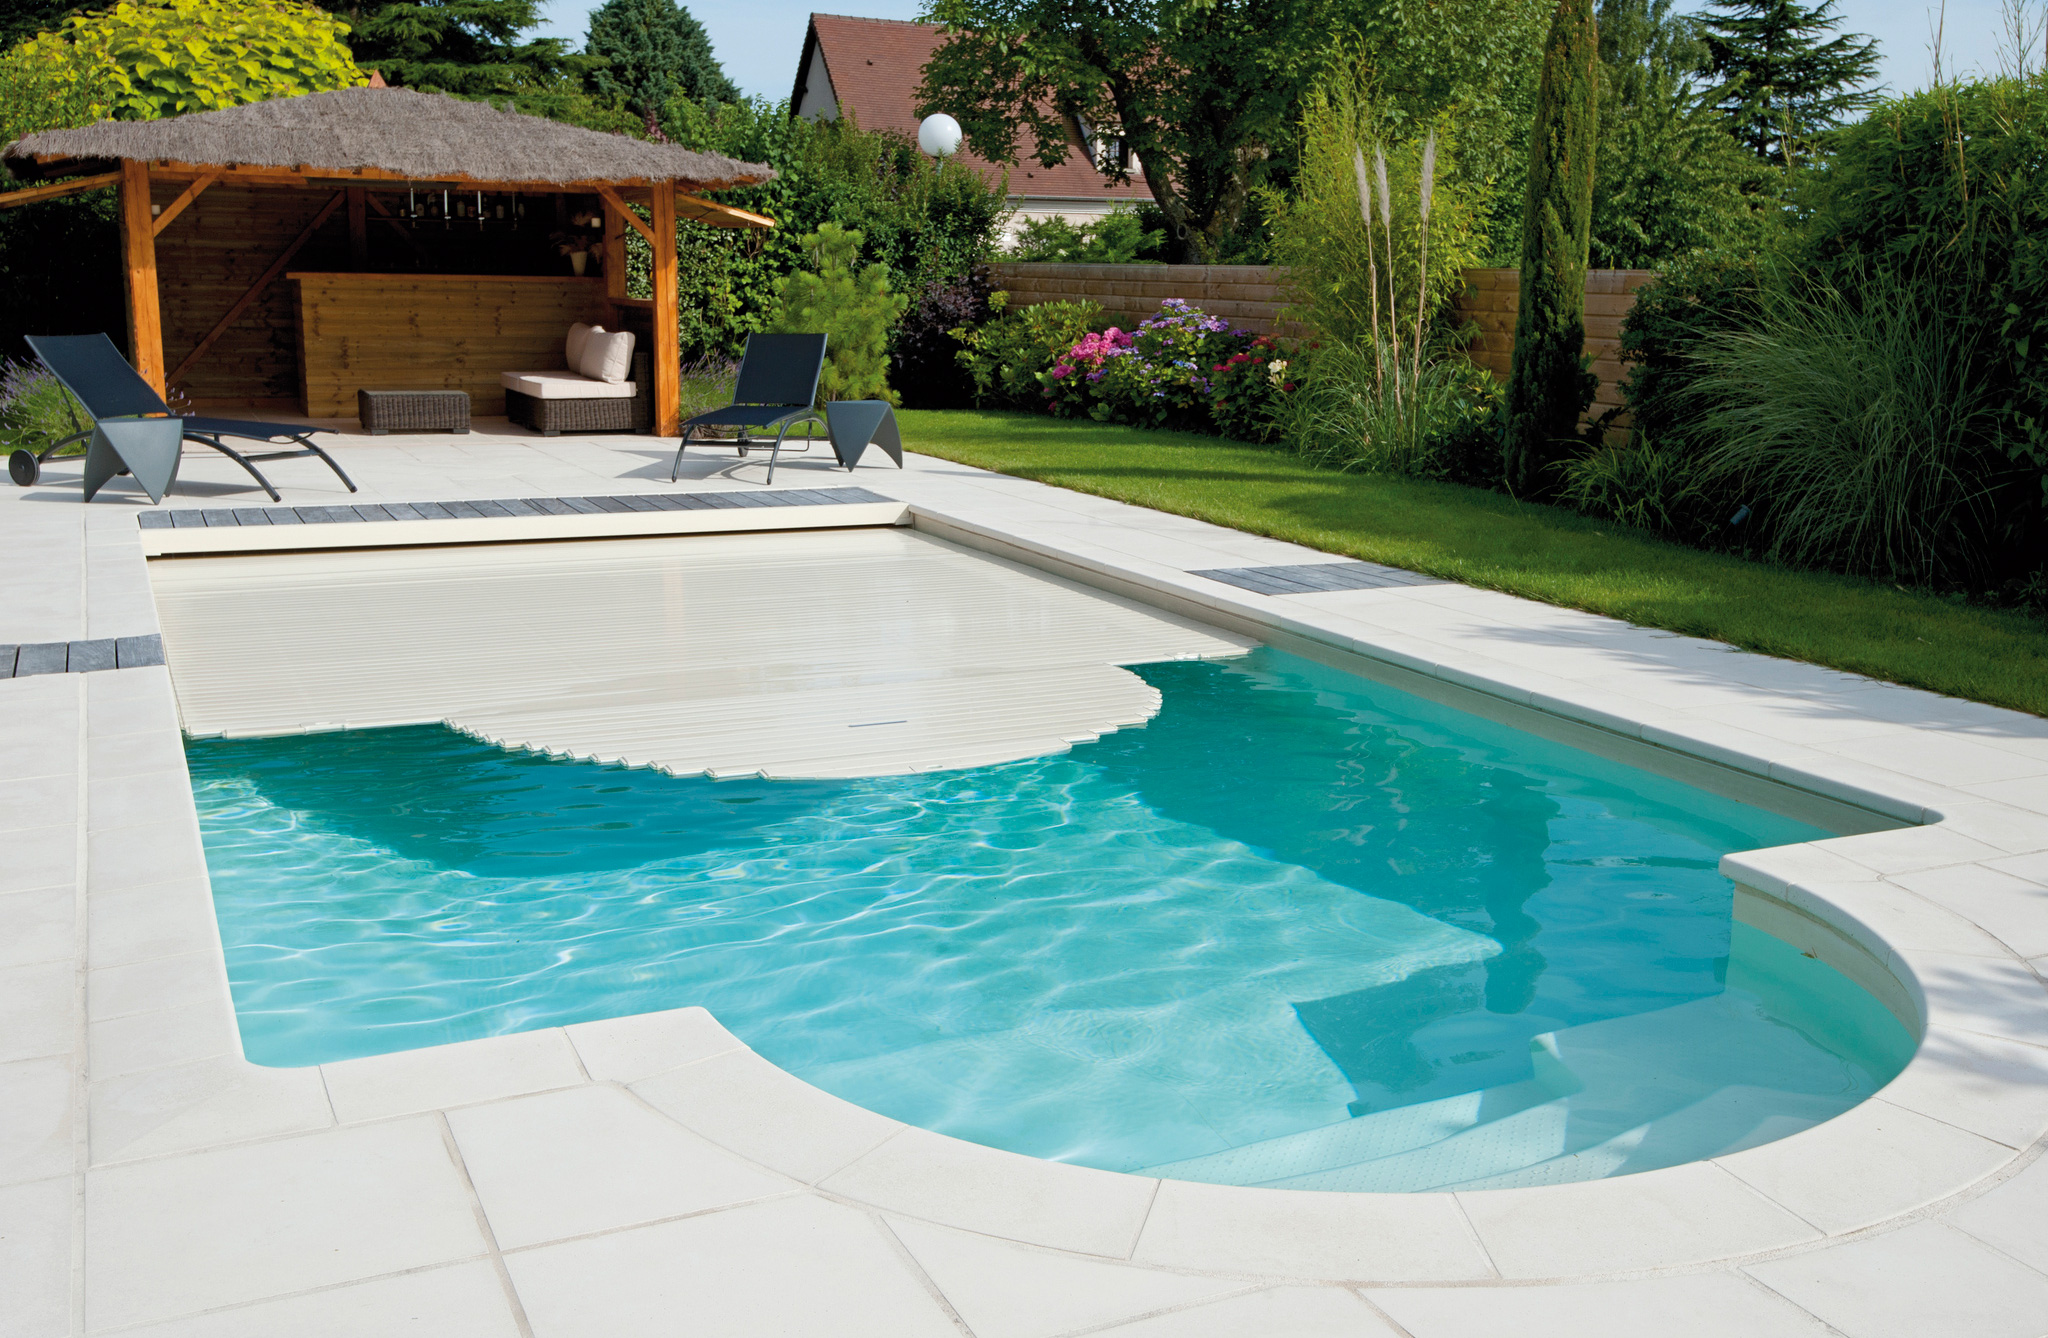 Pool Abdeckung Folie Poolabdeckung Desjoyaux Pools